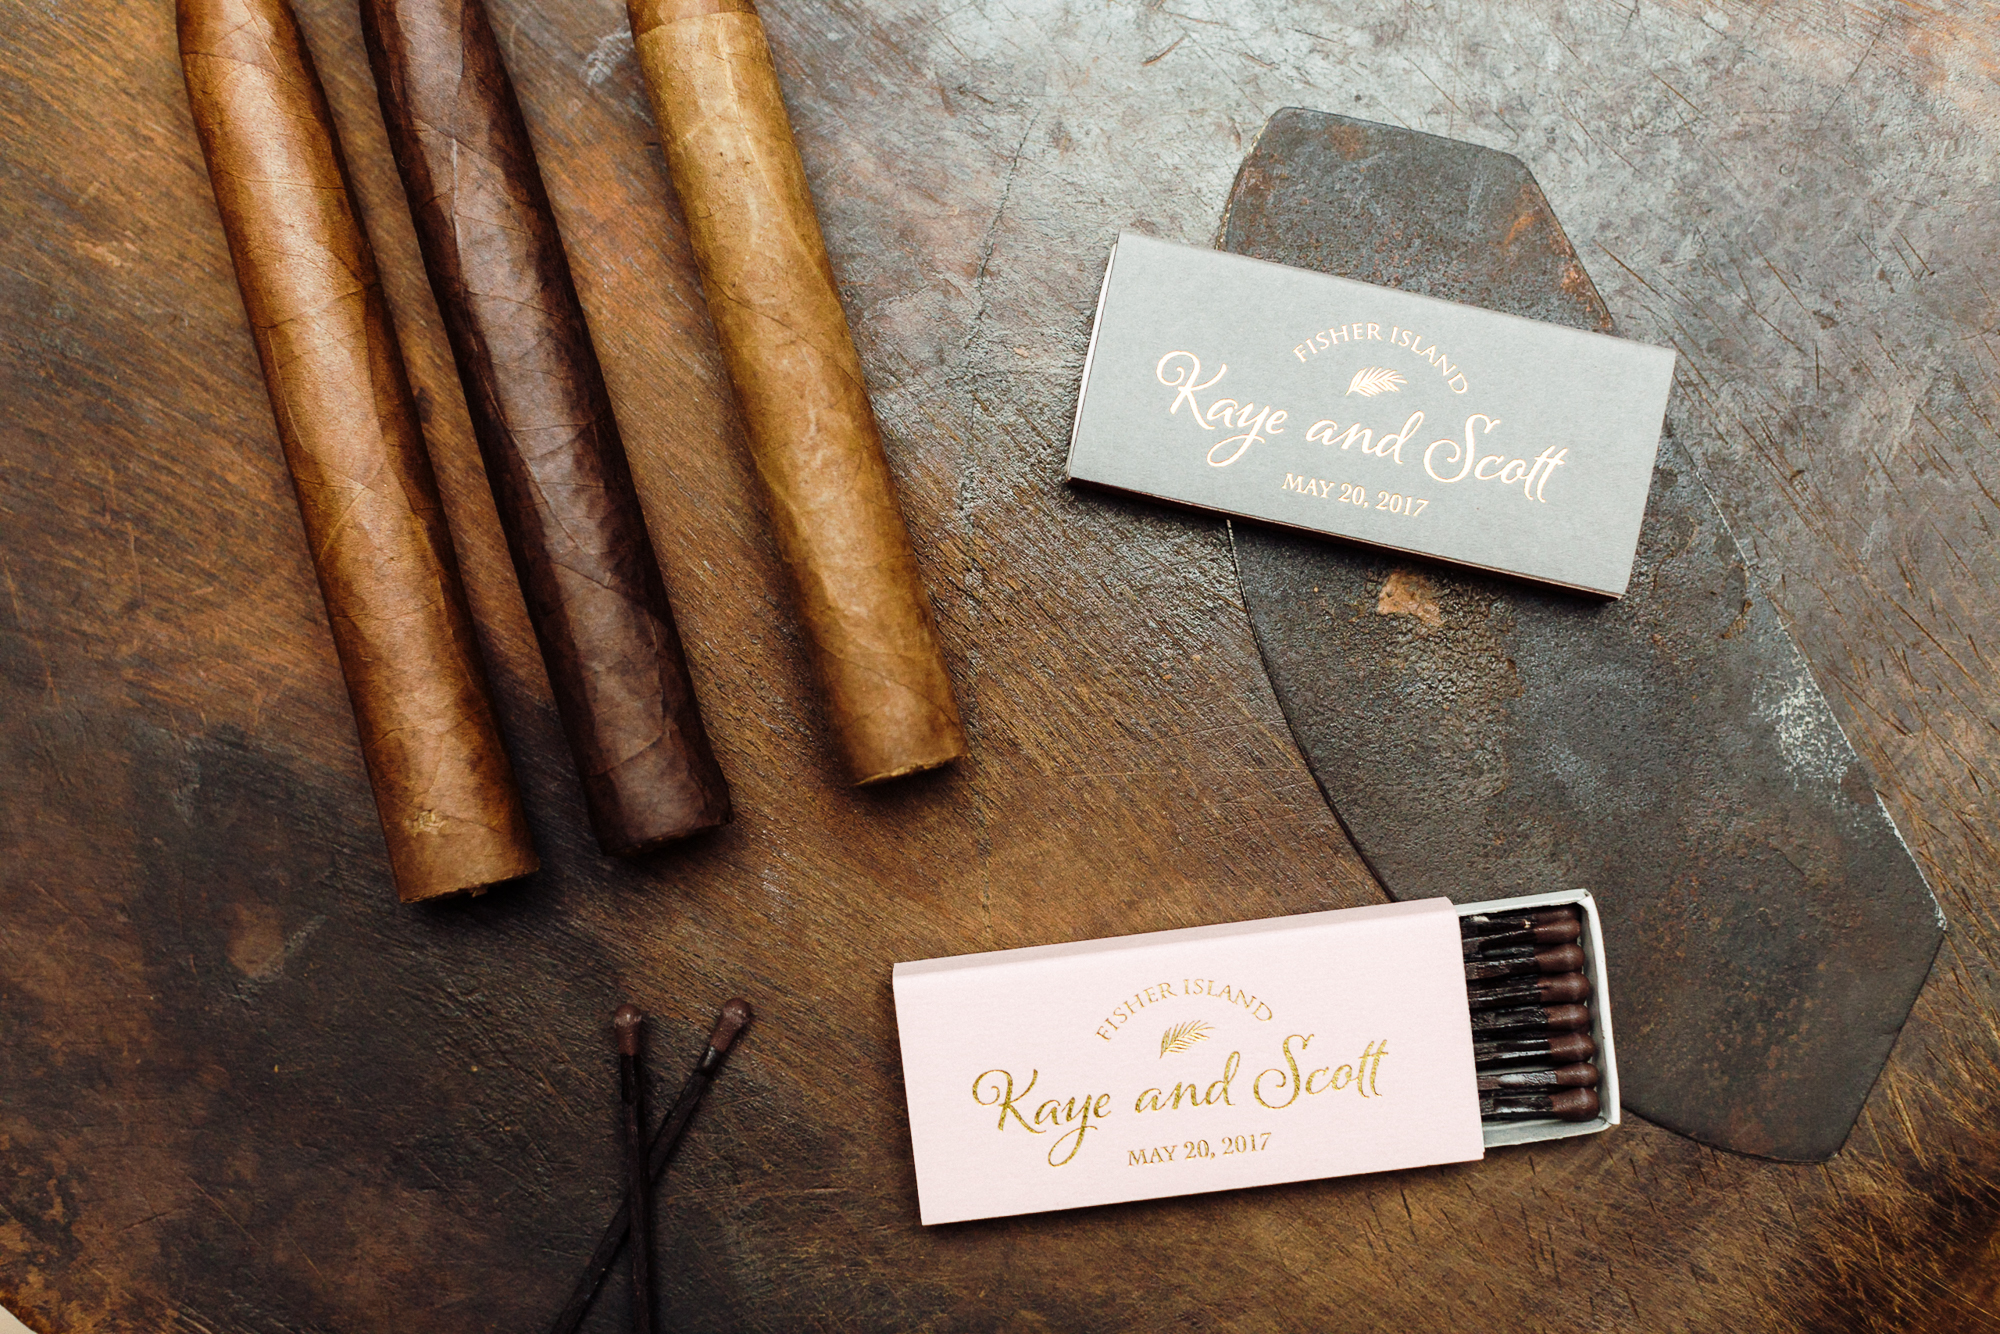 Cigars laying on table with two monogramed match boxes in white or blue color.